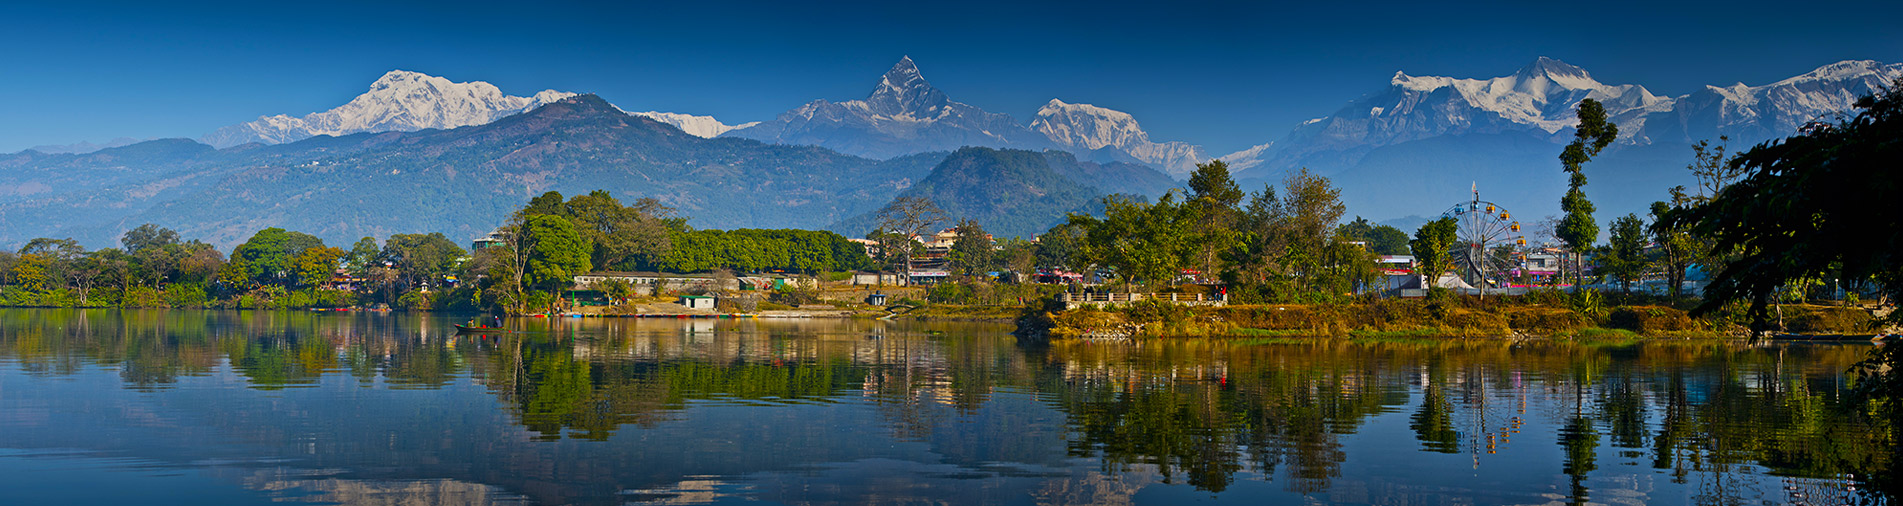 12 Day Solo Nepal Holiday | Trip to Nepal for Singles | Just You